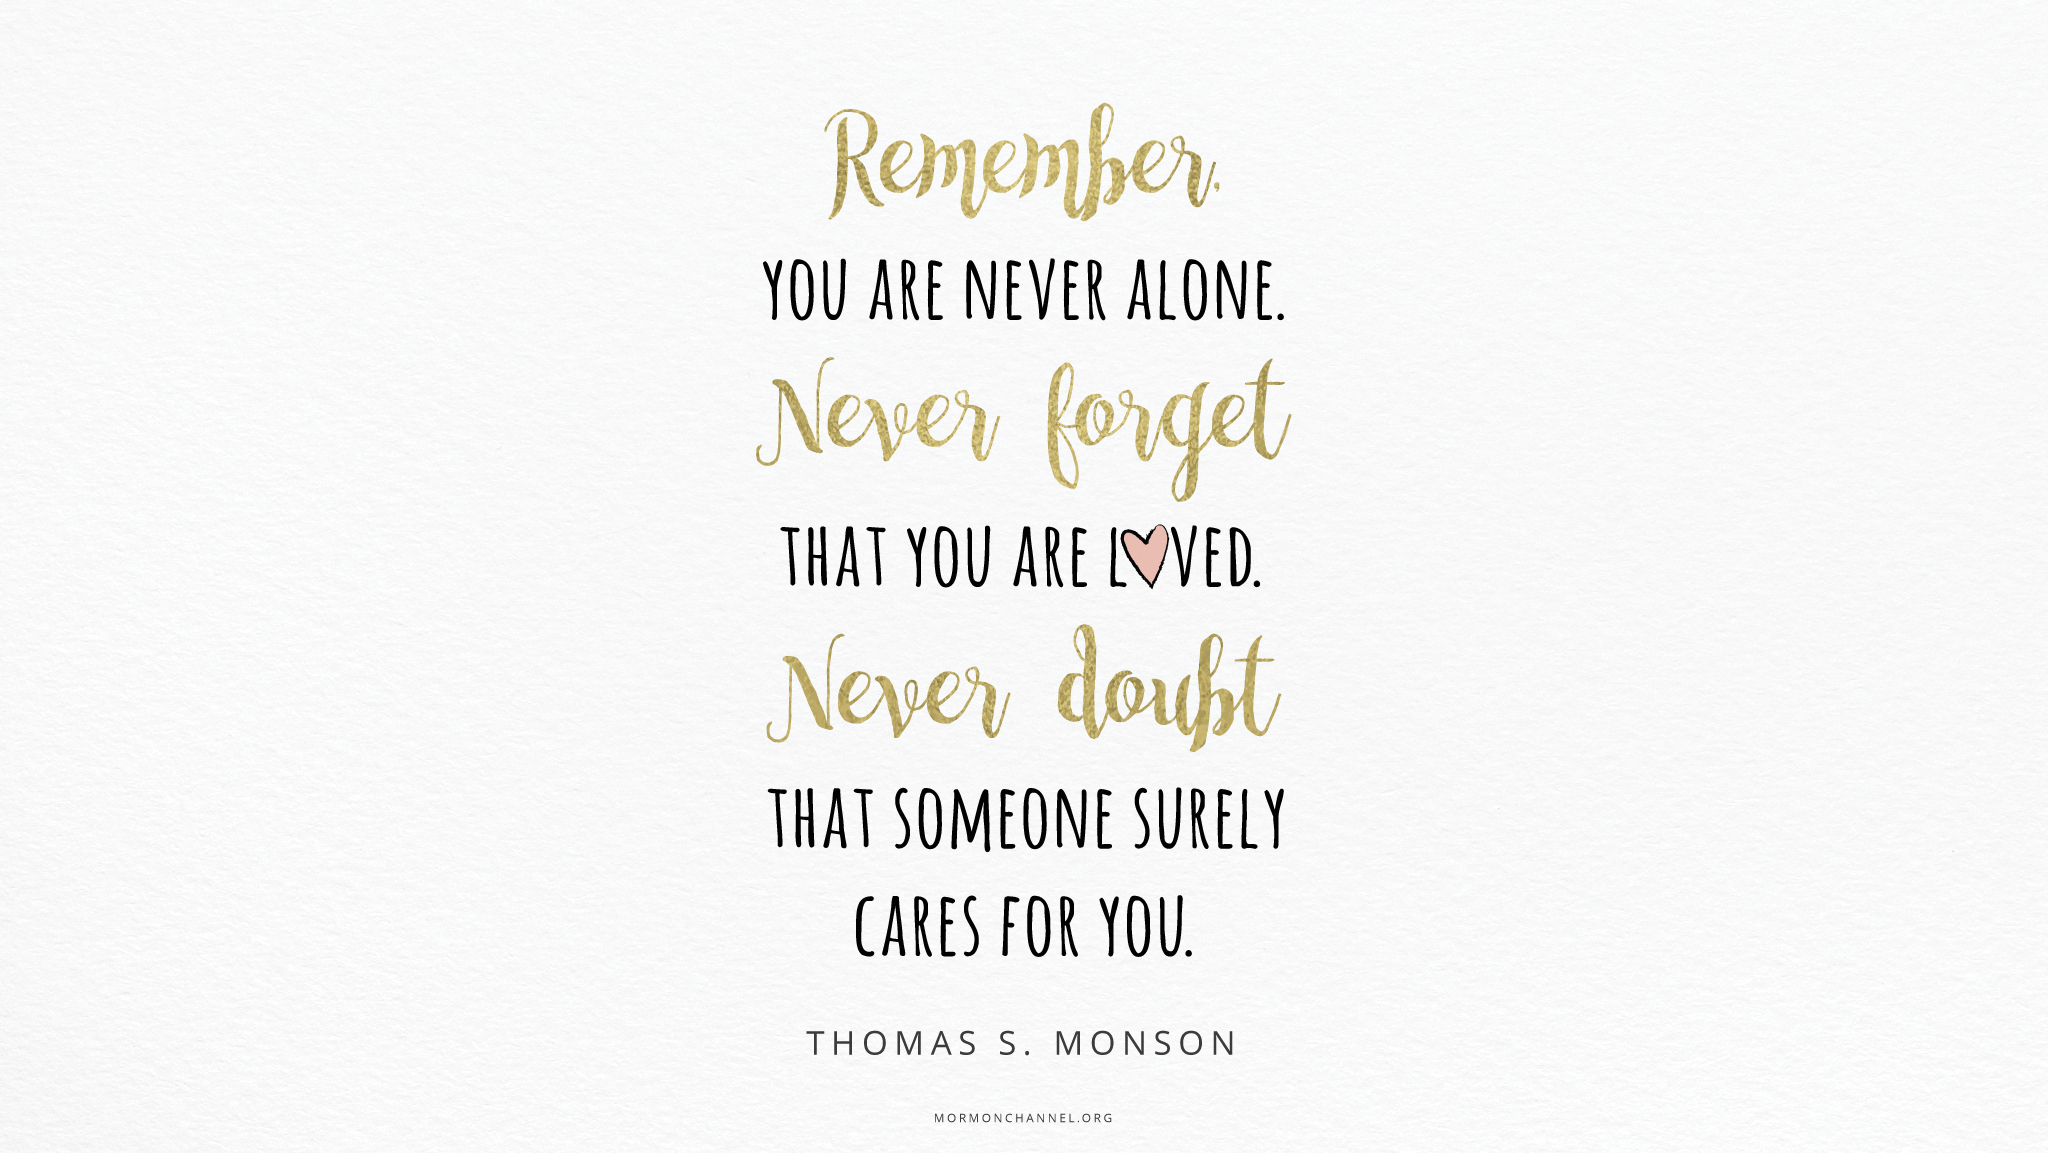 """""""Remember, you are never alone. Never forget that you are loved. Never doubt that someone surely cares for you.""""—President Thomas S. Monson, """"A Time to Choose"""""""